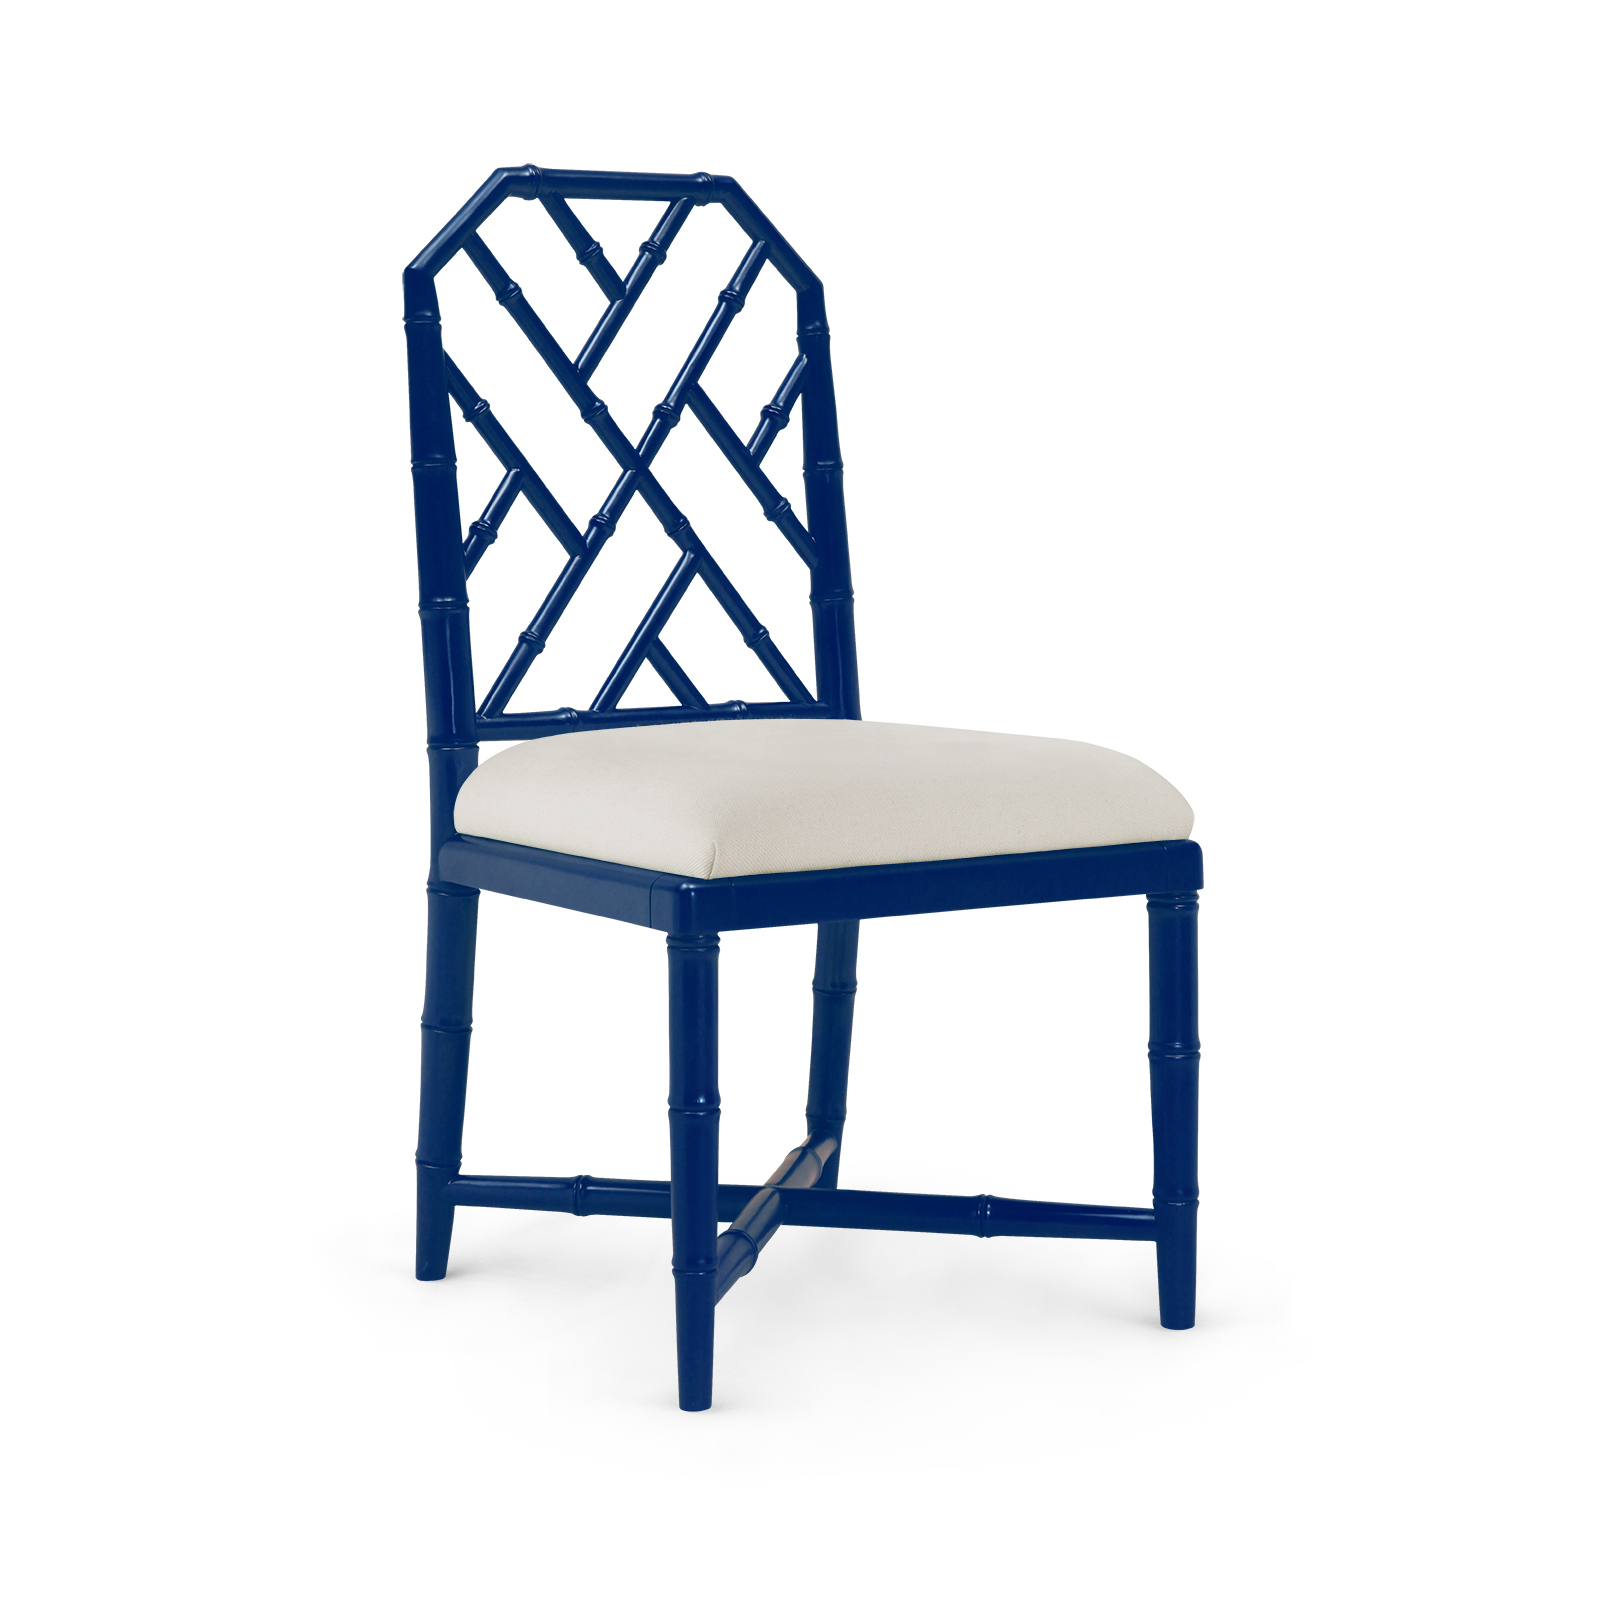 Chippendale side chair - Jardin Side Chair Navy Blue Sku Jar 550 08 Jardin Chairs Are Hand